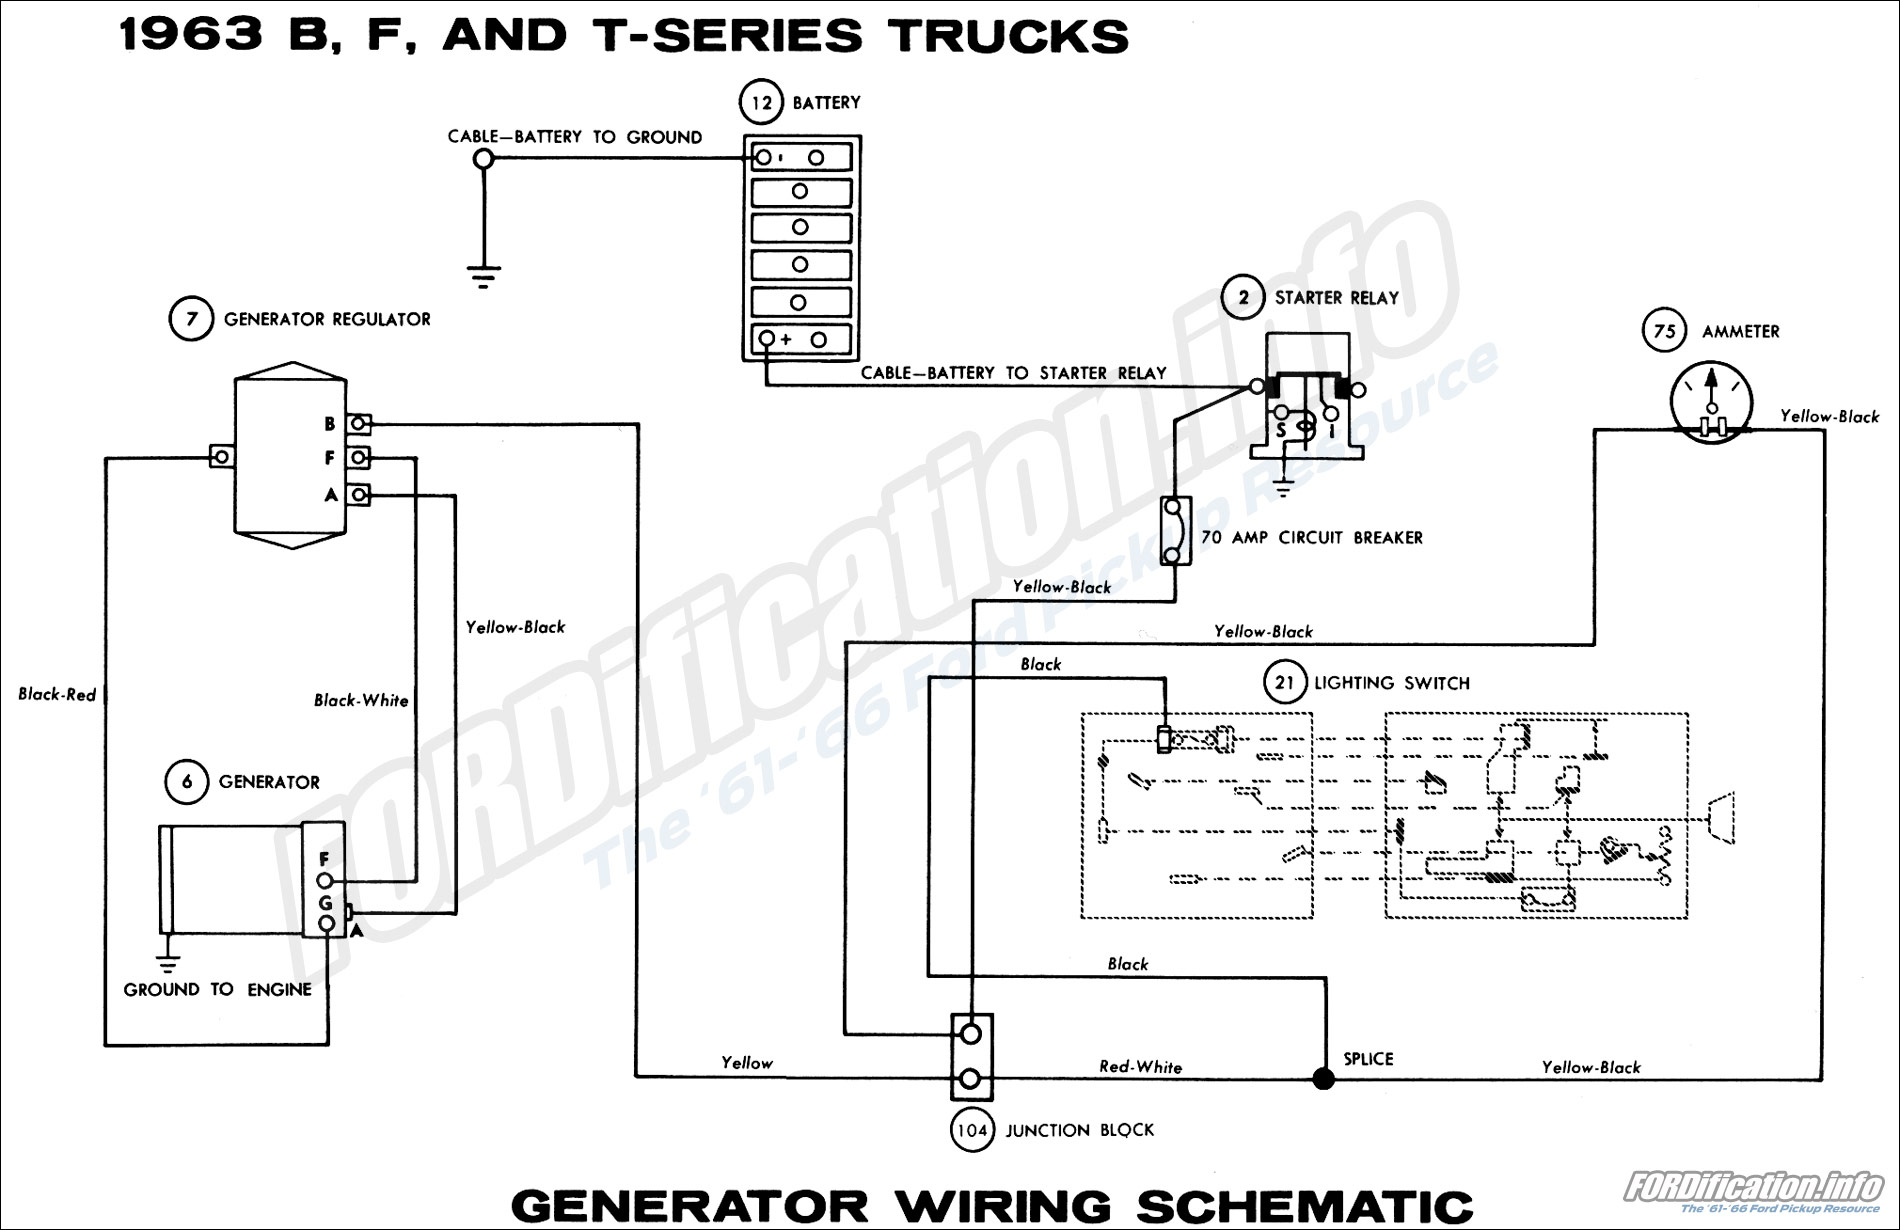 hight resolution of ford generator wiring diagram wiring diagram schematics62 ford generator wiring diagram wiring diagram schematics ford 3000